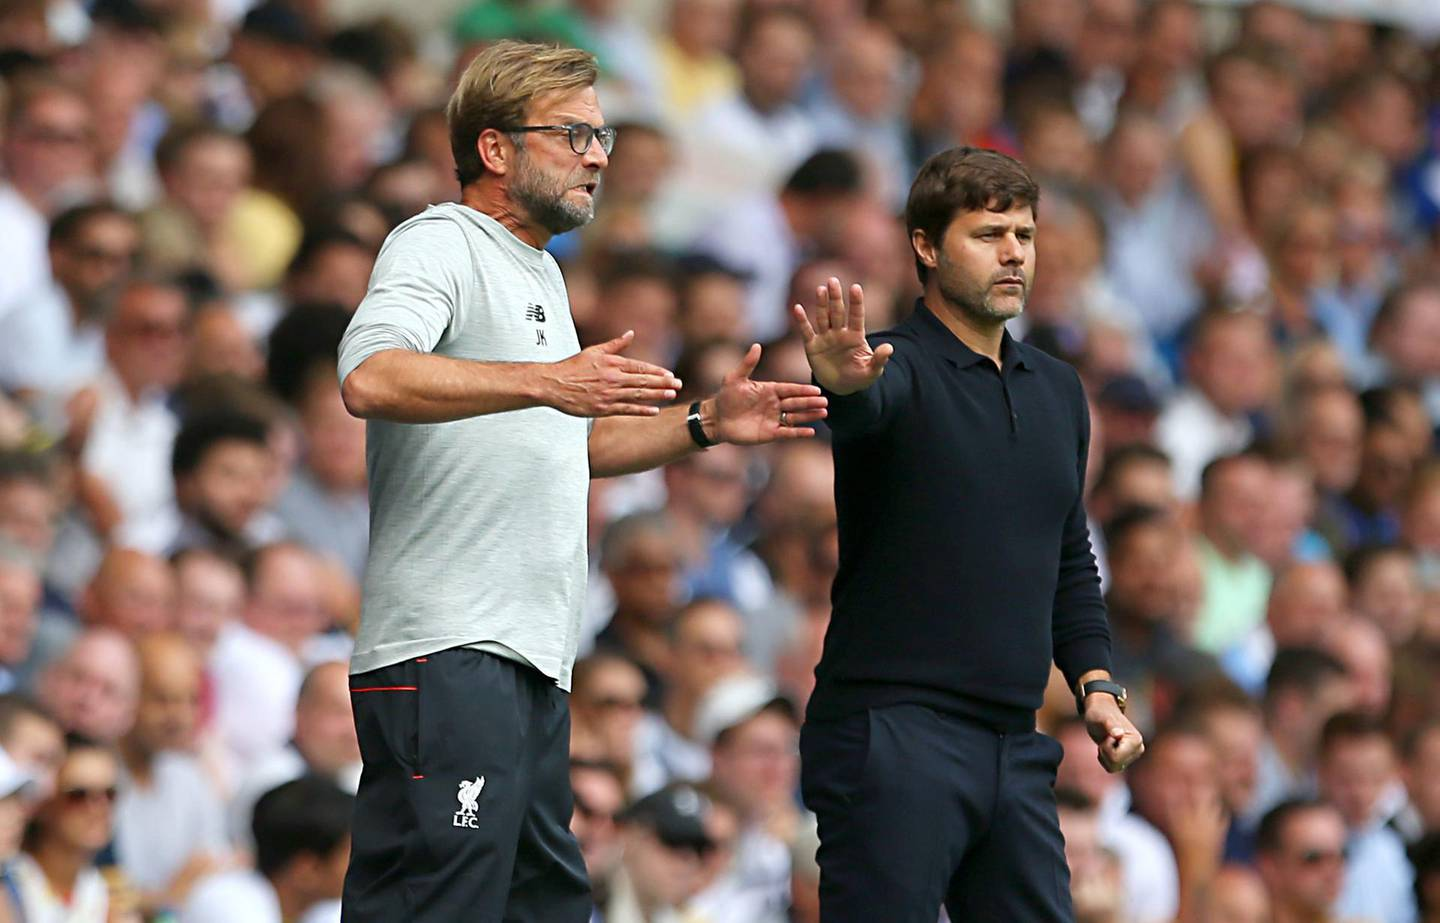 File photo dated 27-08-2016 of Liverpool manager Jurgen Klopp (left) and Tottenham Hotspur manager Mauricio Pochettino during the Premier League match at White Hart Lane, London. PRESS ASSOCIATION Photo. Issue date: Wednesday May 29, 2019. KloppÕs record in finals is well known and remains the stick with which he is beaten.  See PA story SOCCER Final Talking Points. Photo credit should read Steve Paston/PA Wire.